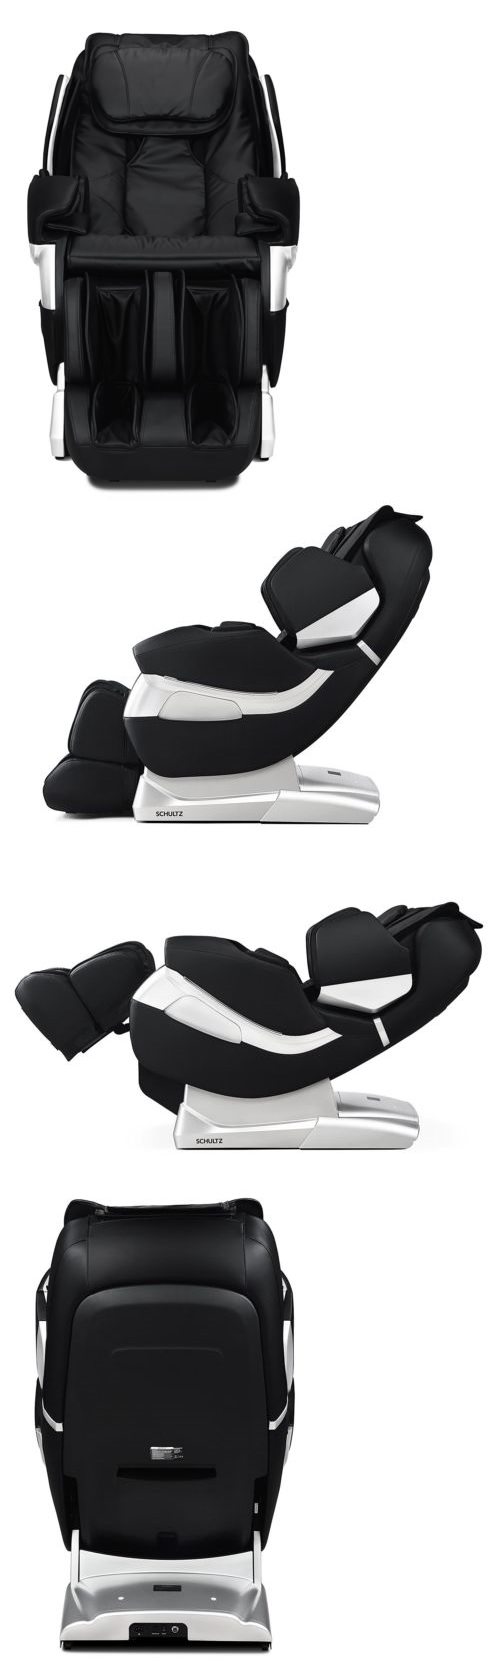 Electric Massage Chairs: Schultz Zycrapulse™ Massage Lounge Chair Retails  For $14,450  U003e BUY